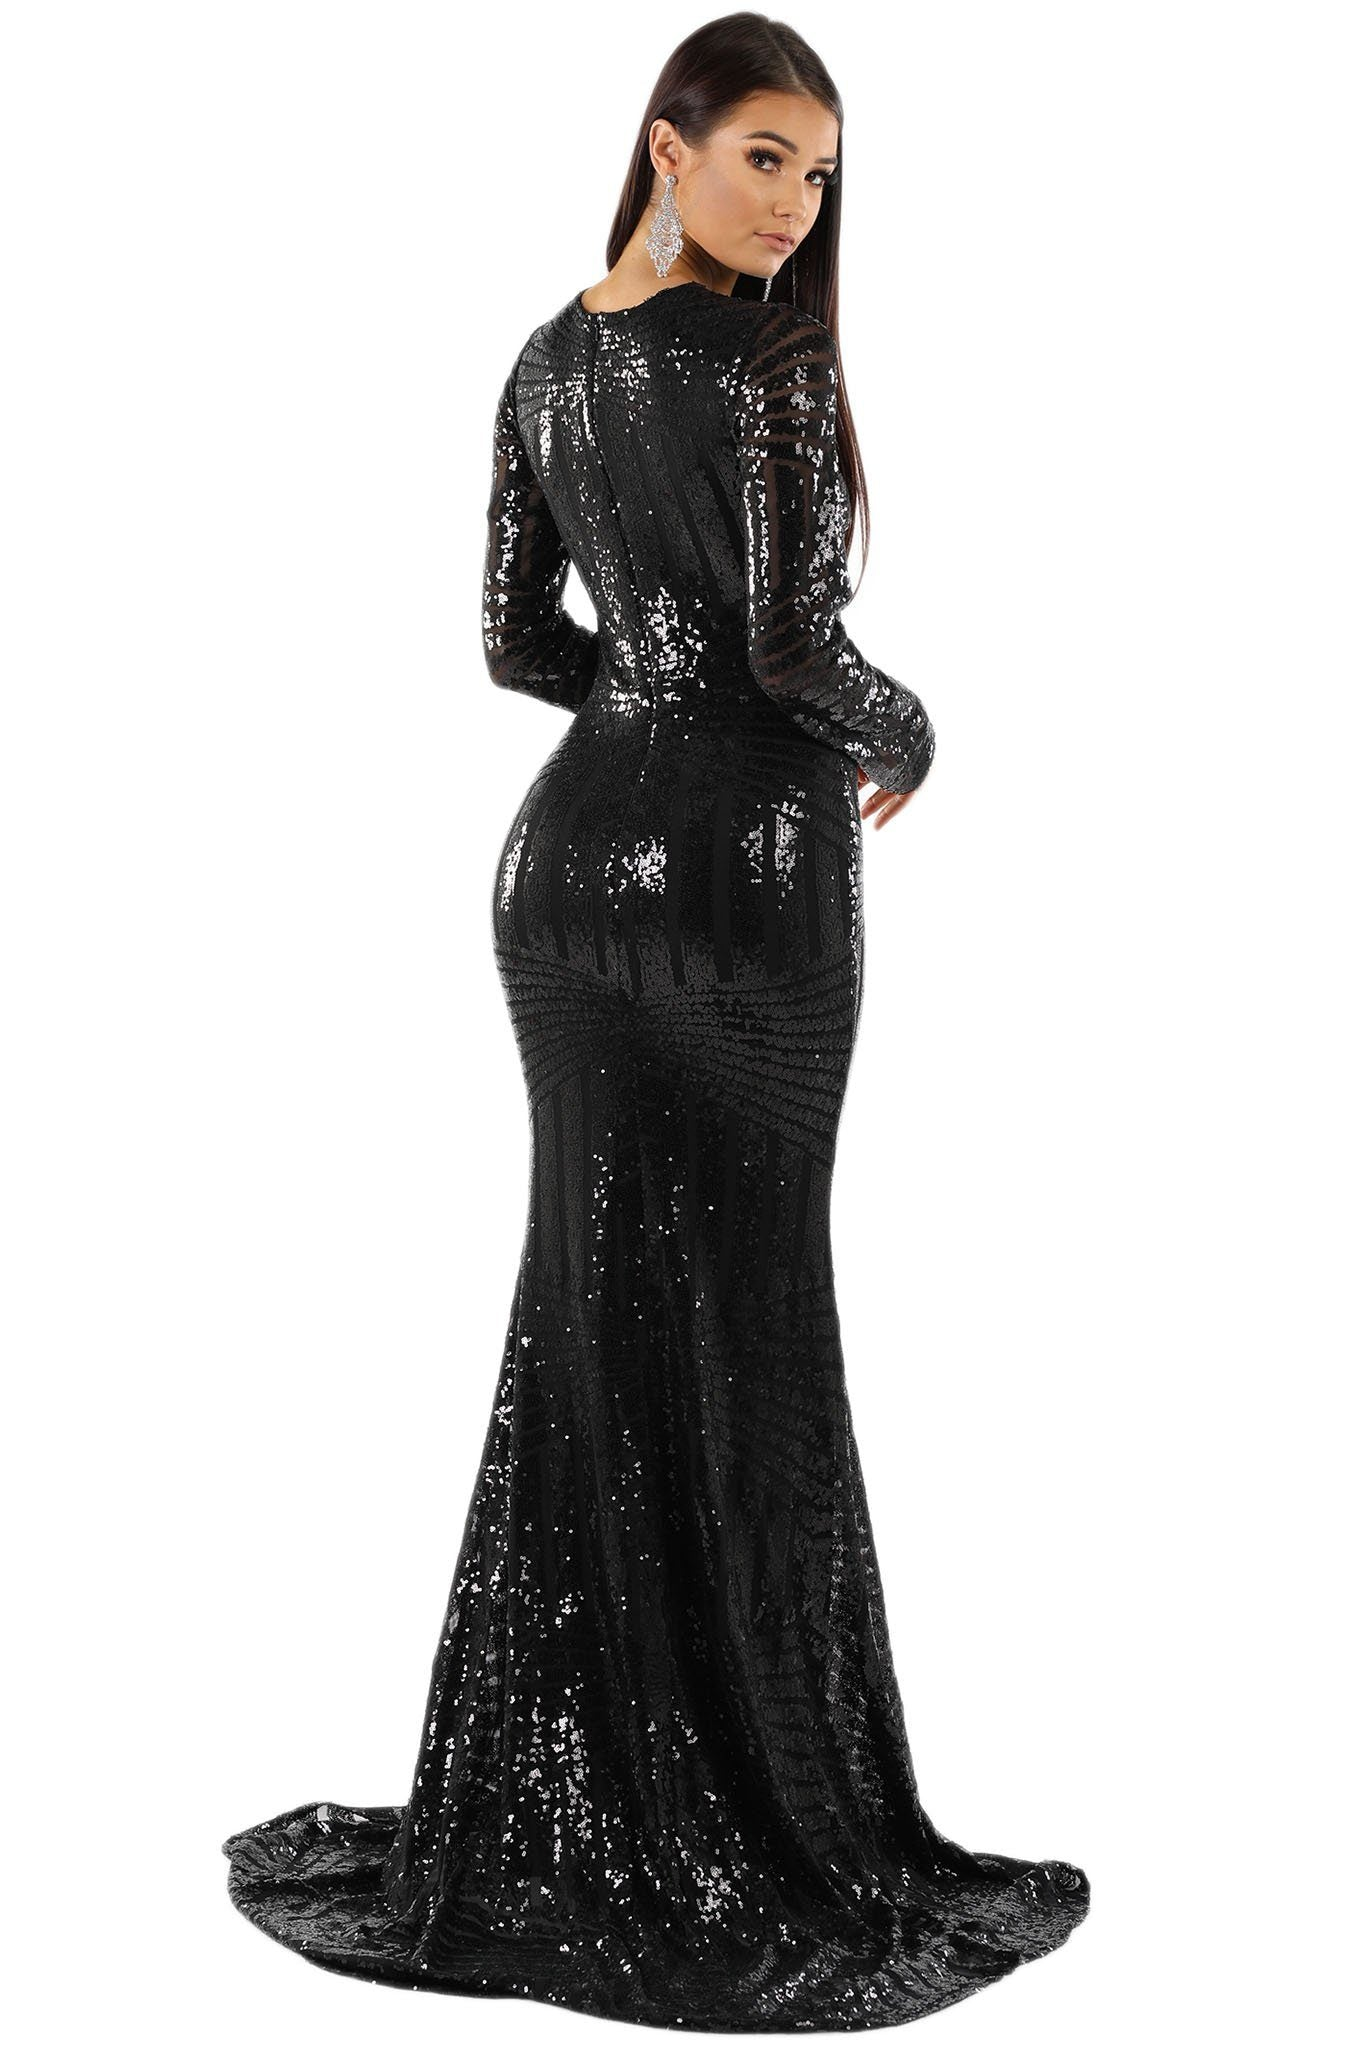 ALIYA Long Sleeve Sequin Gown - Black – Noodz Boutique